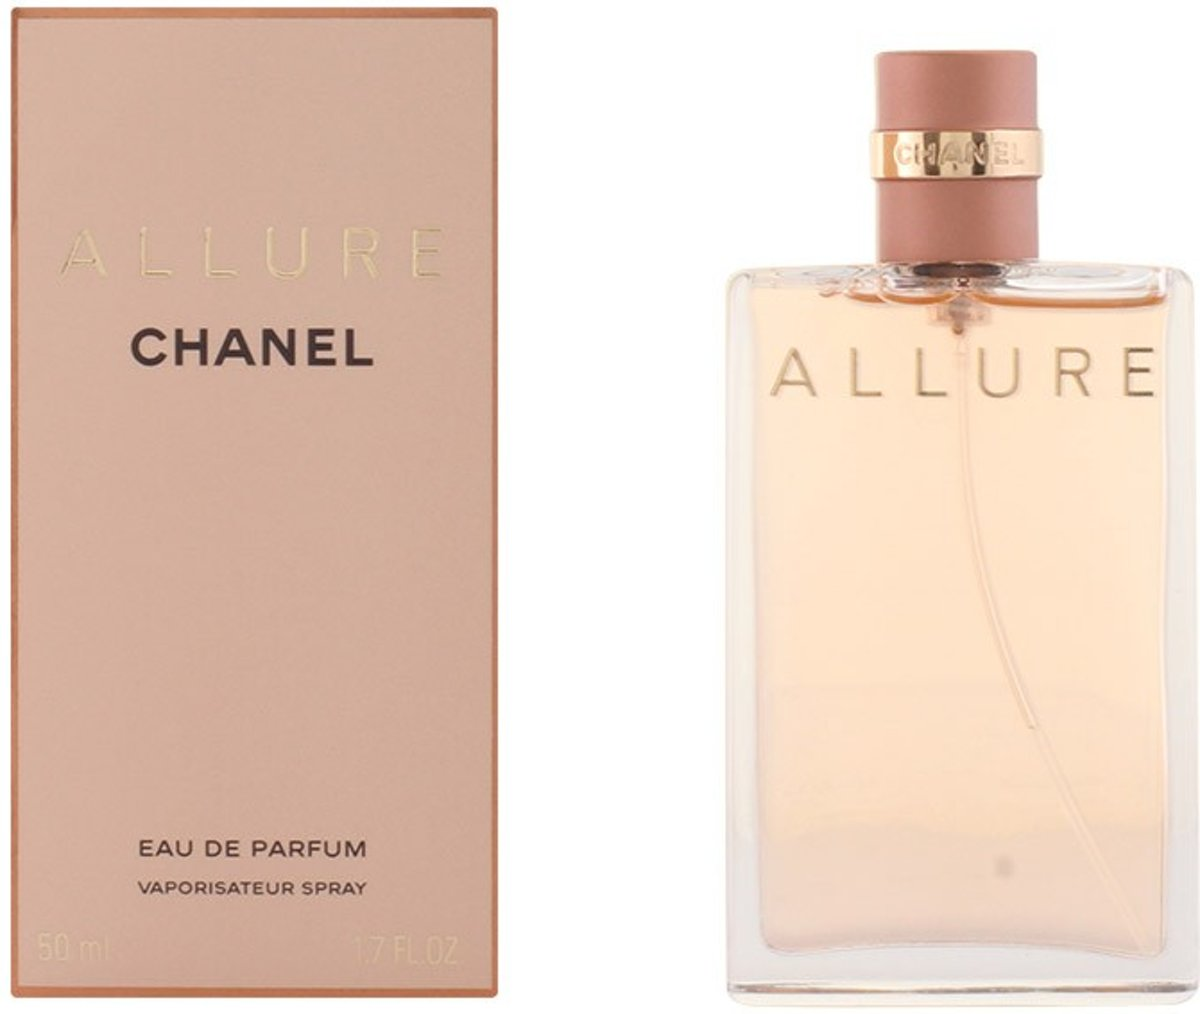 MULTI BUNDEL 2 stuks ALLURE Eau de Perfume Spray 50 ml